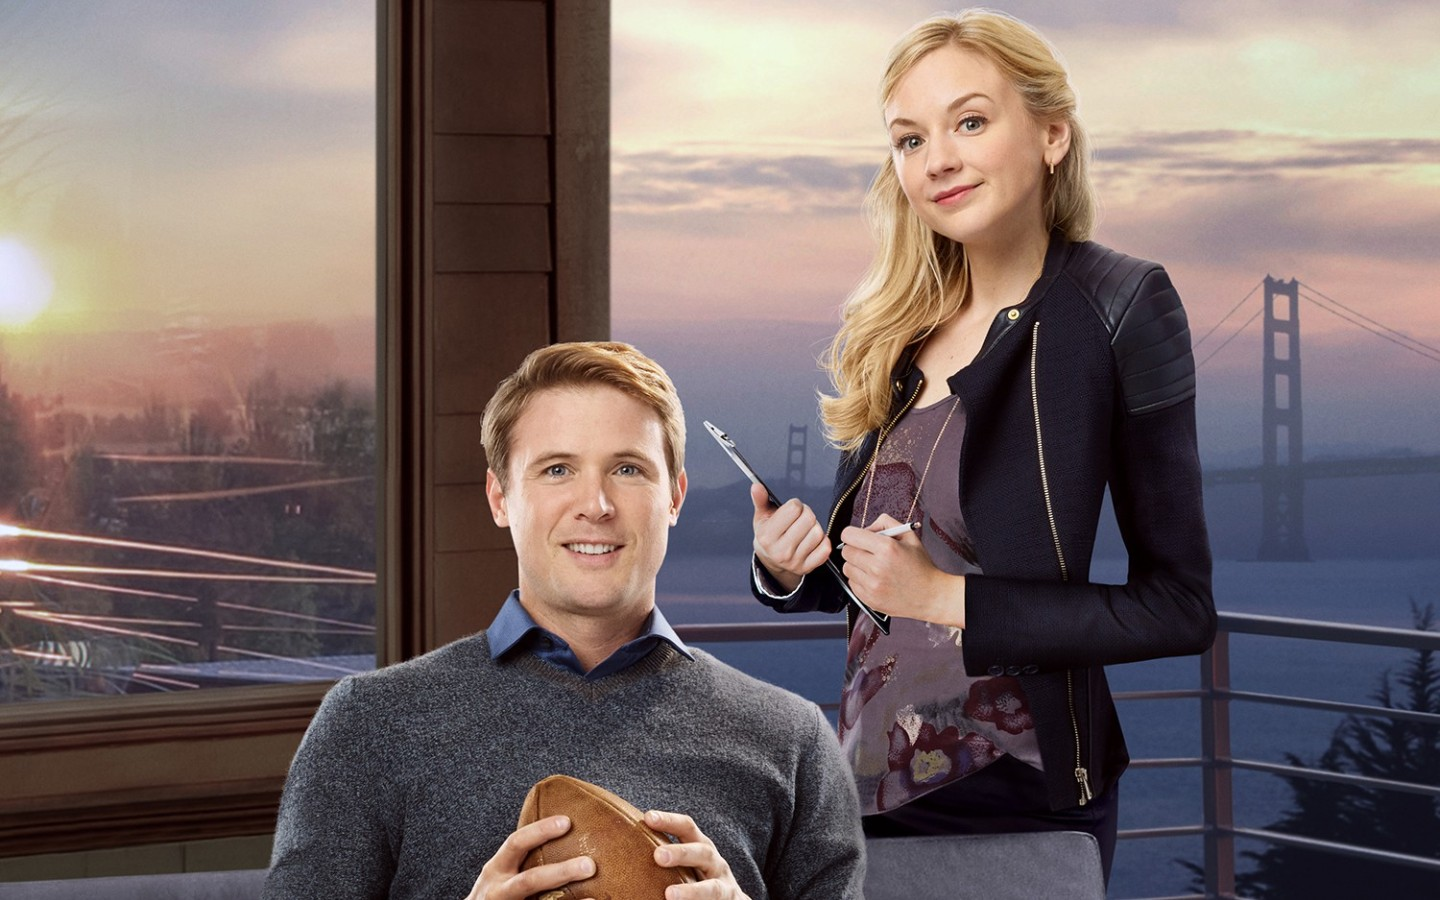 love on the sidelines 2016 1440 x 900 download close